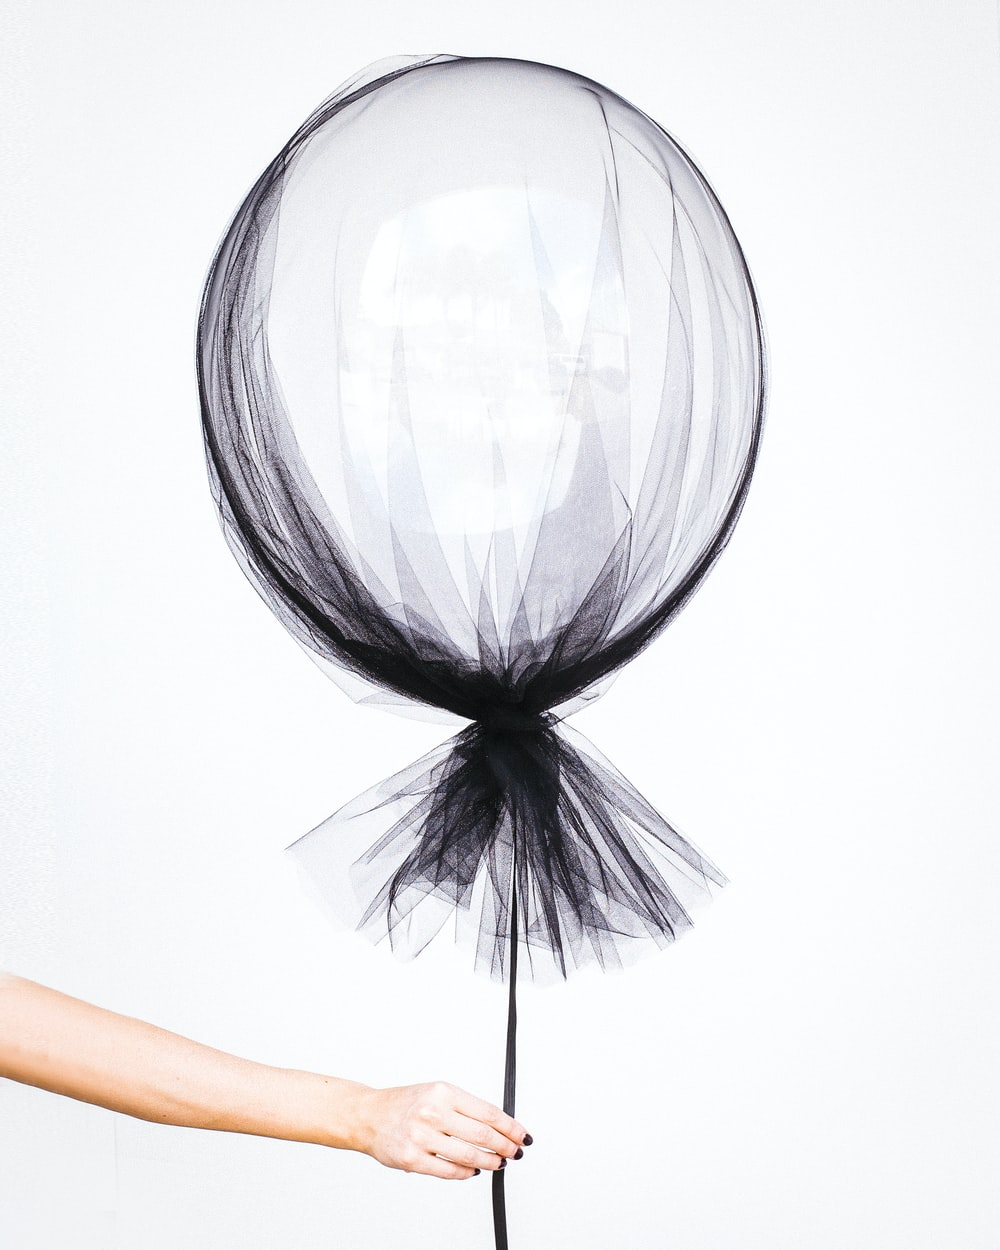 person holding black balloon decal